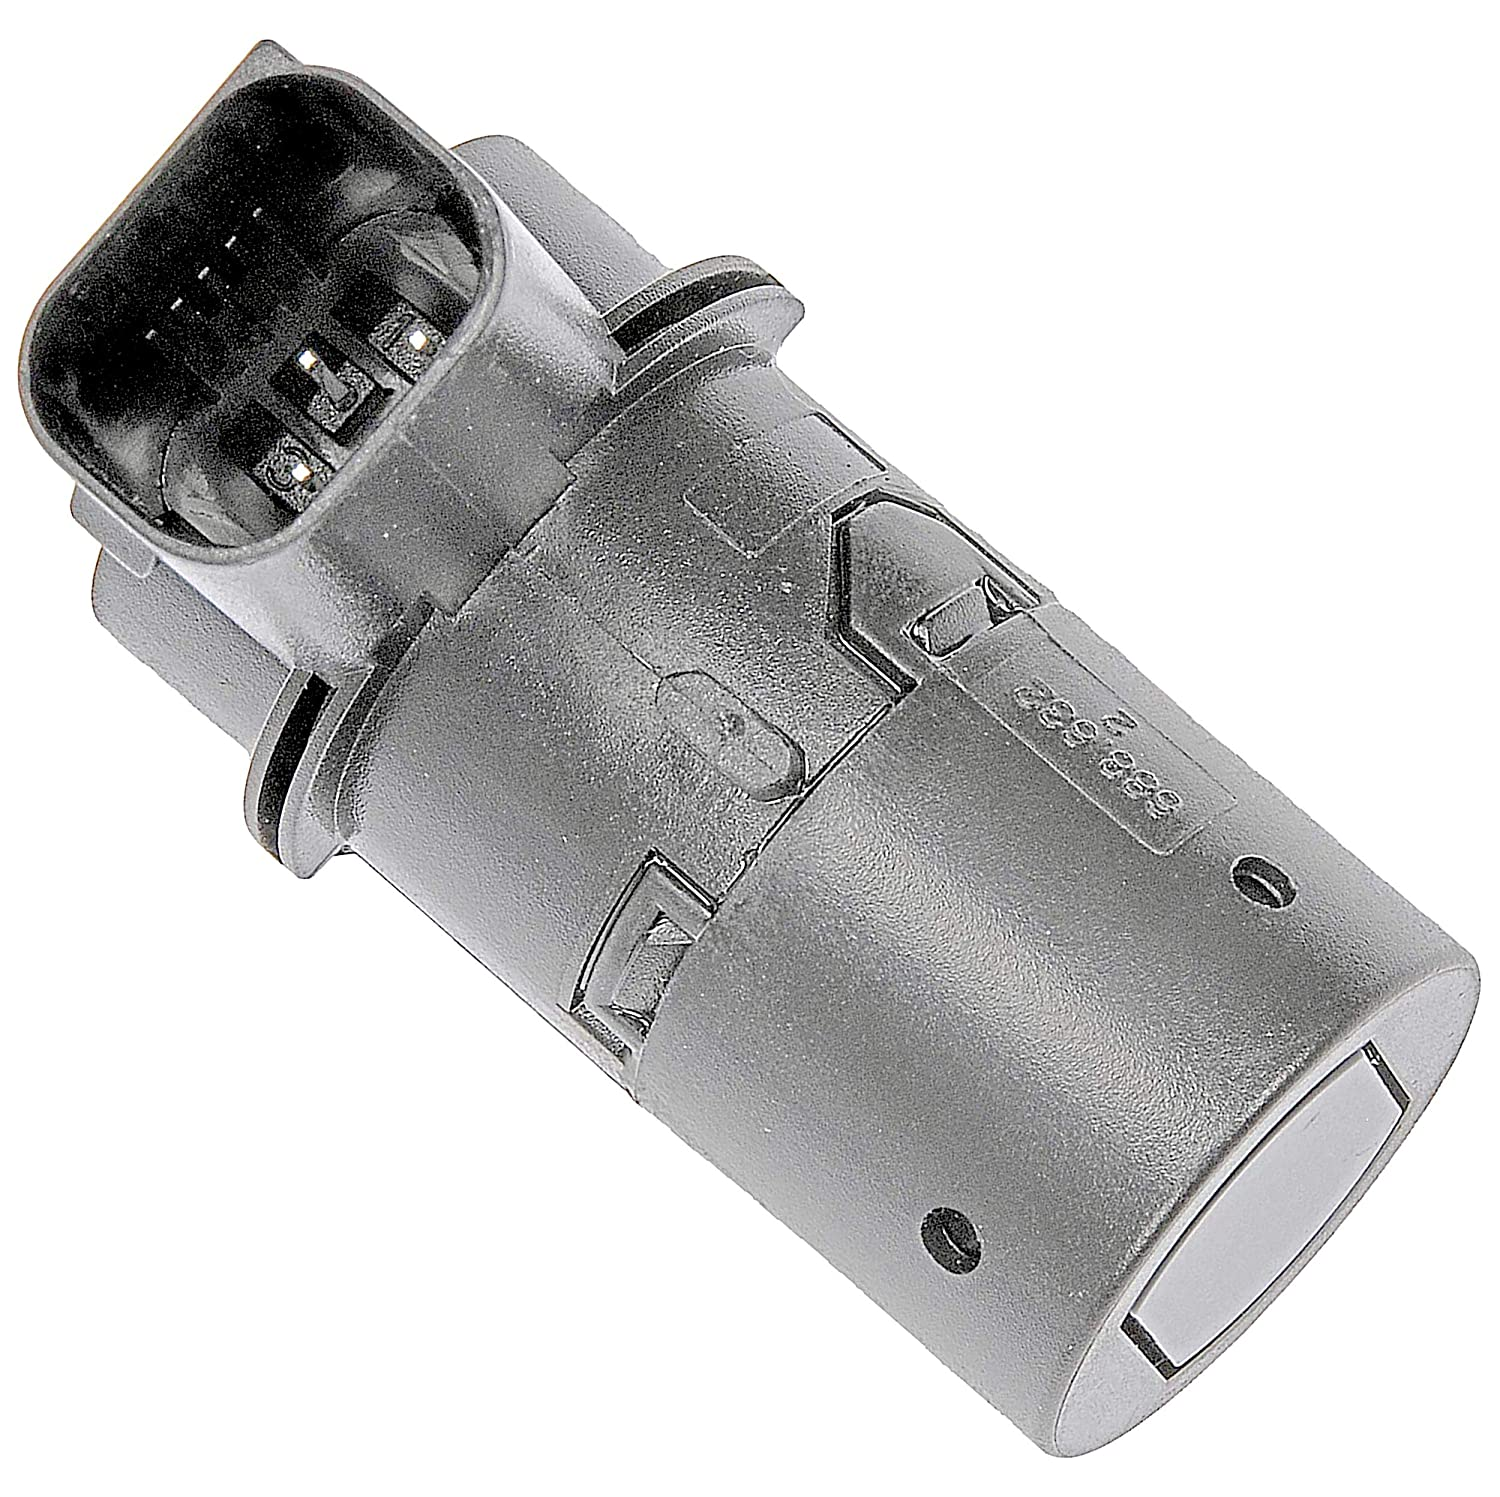 Apdty 3f2z15k859ba Park Assist Backup Reverse Pdc 2010 Ford F 150 Fuel Filter Wrench Distance Sensor Fits Numerous Lincoln Mercury Vehicles Replaces 3f2z 15k859 Ba